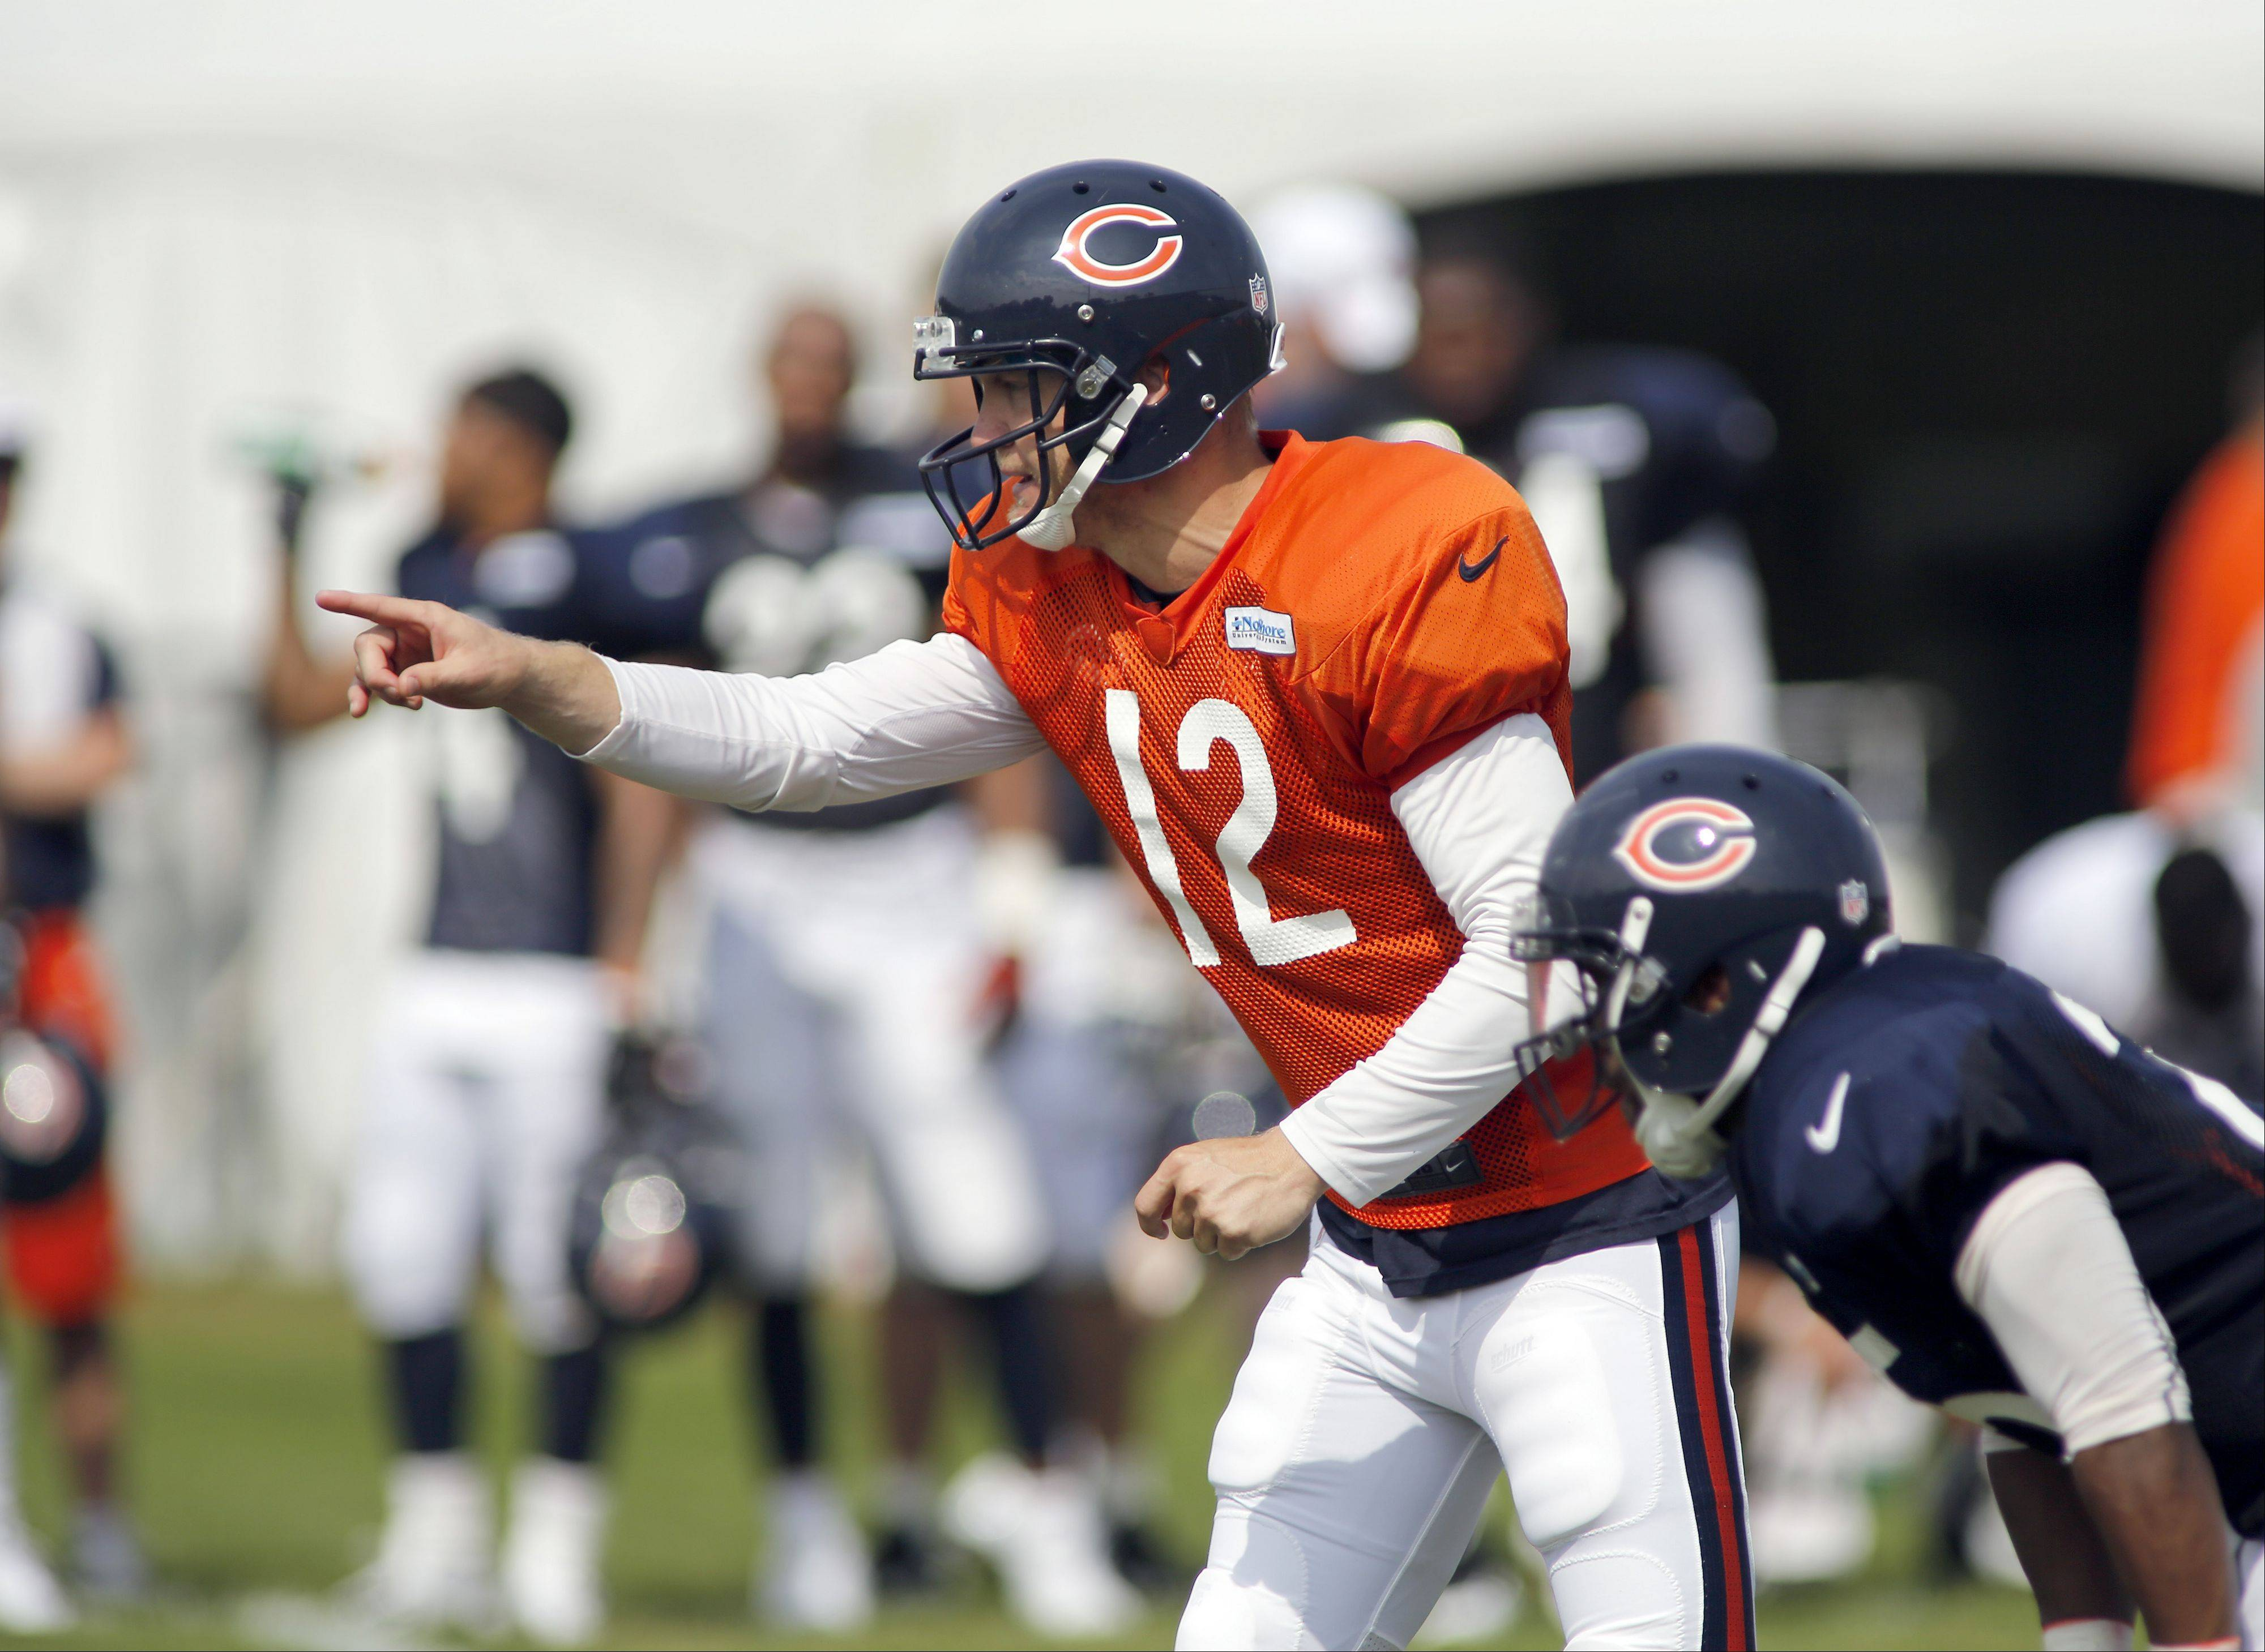 Chicago Bears quarterback Josh McCown (12) during the Chicago Bears training camp on the campus of Olivet Nazarene University in Bourbonnais, Wednesday.